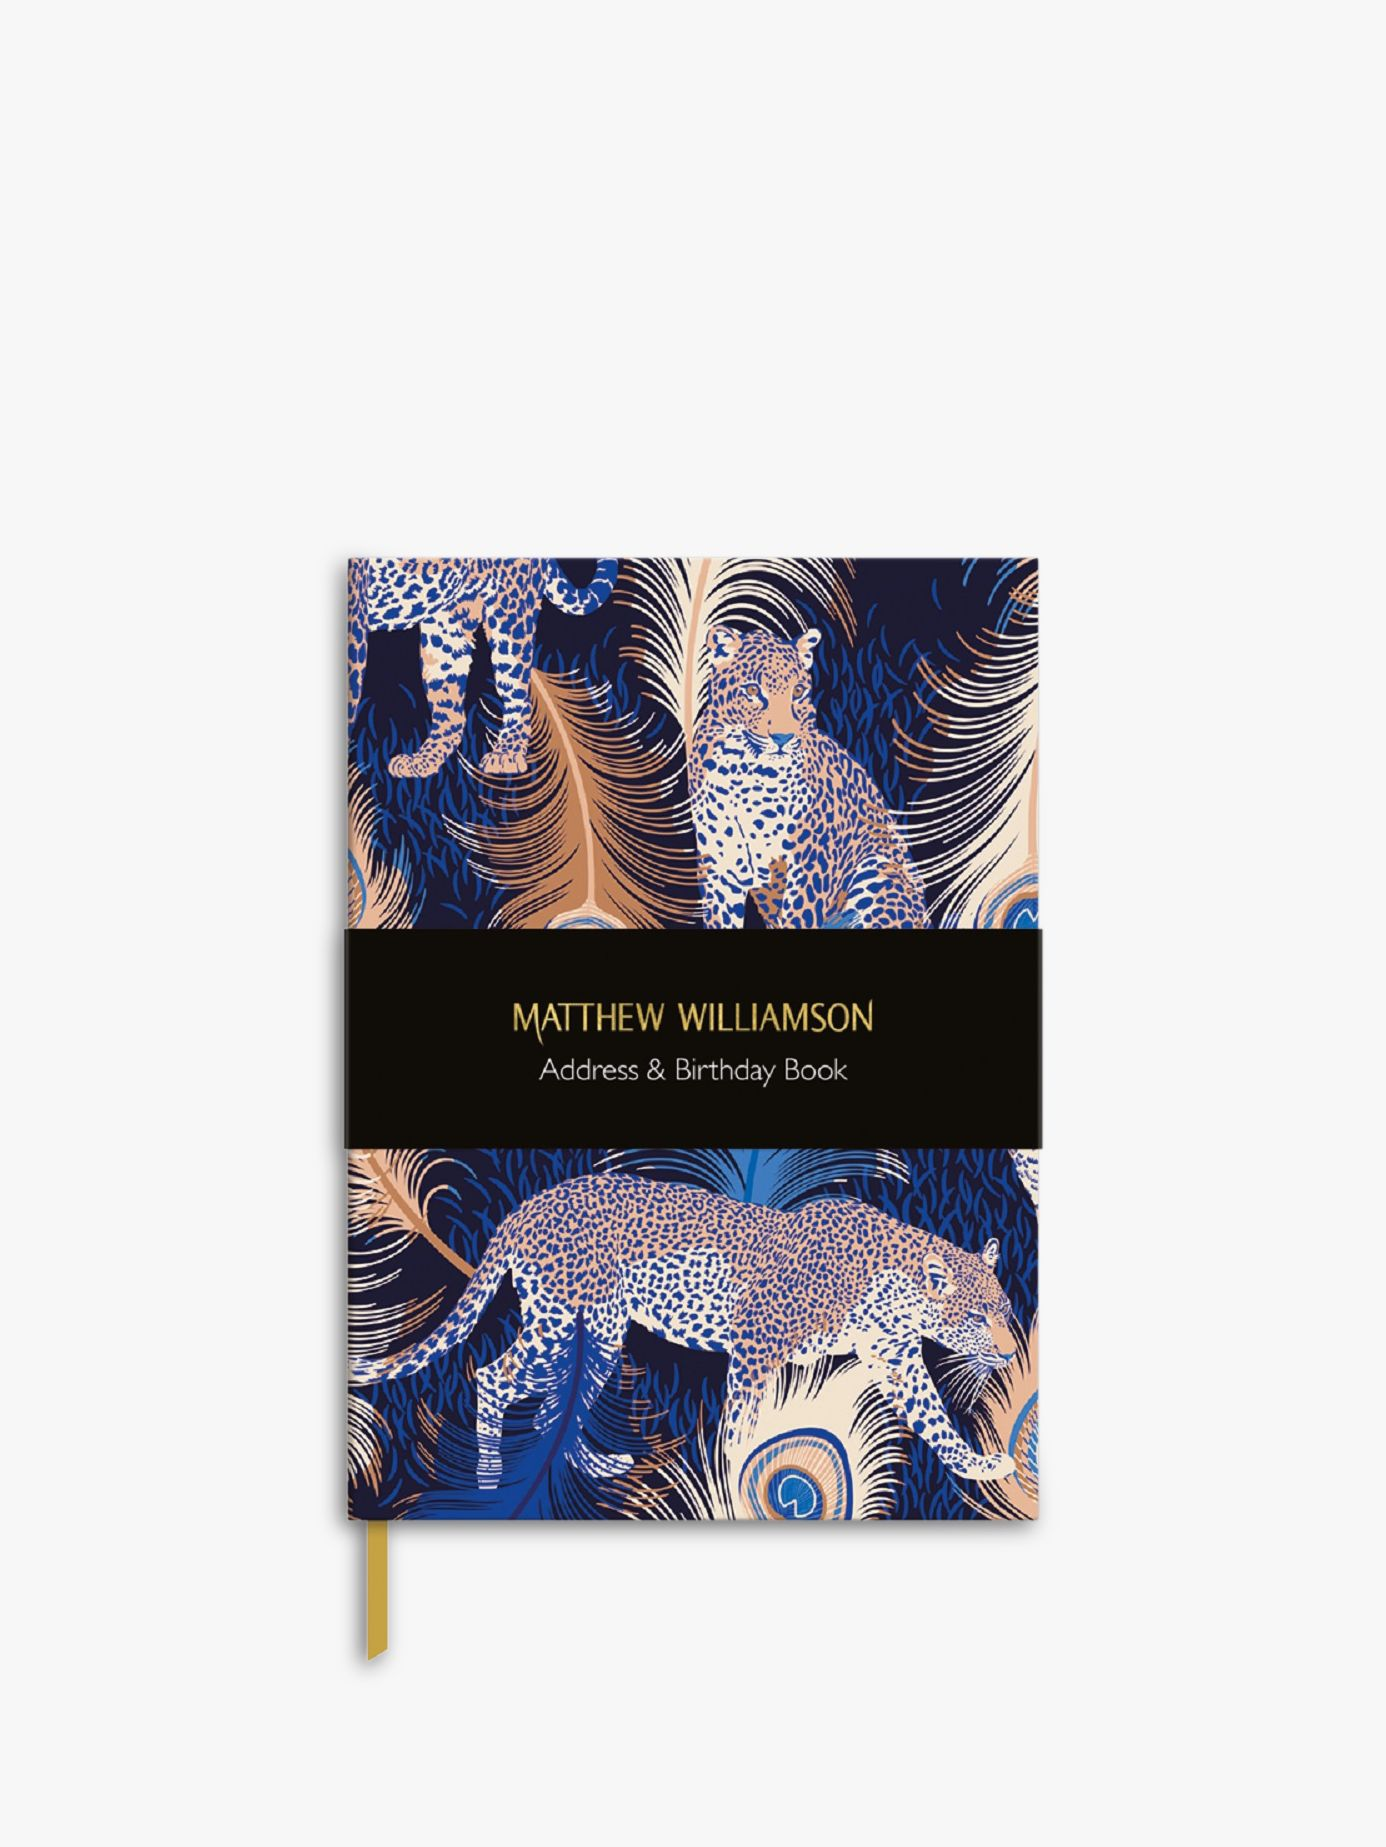 Museums & Galleries Museums & Galleries Matthew Williamson Leopards Address & Birthday Book